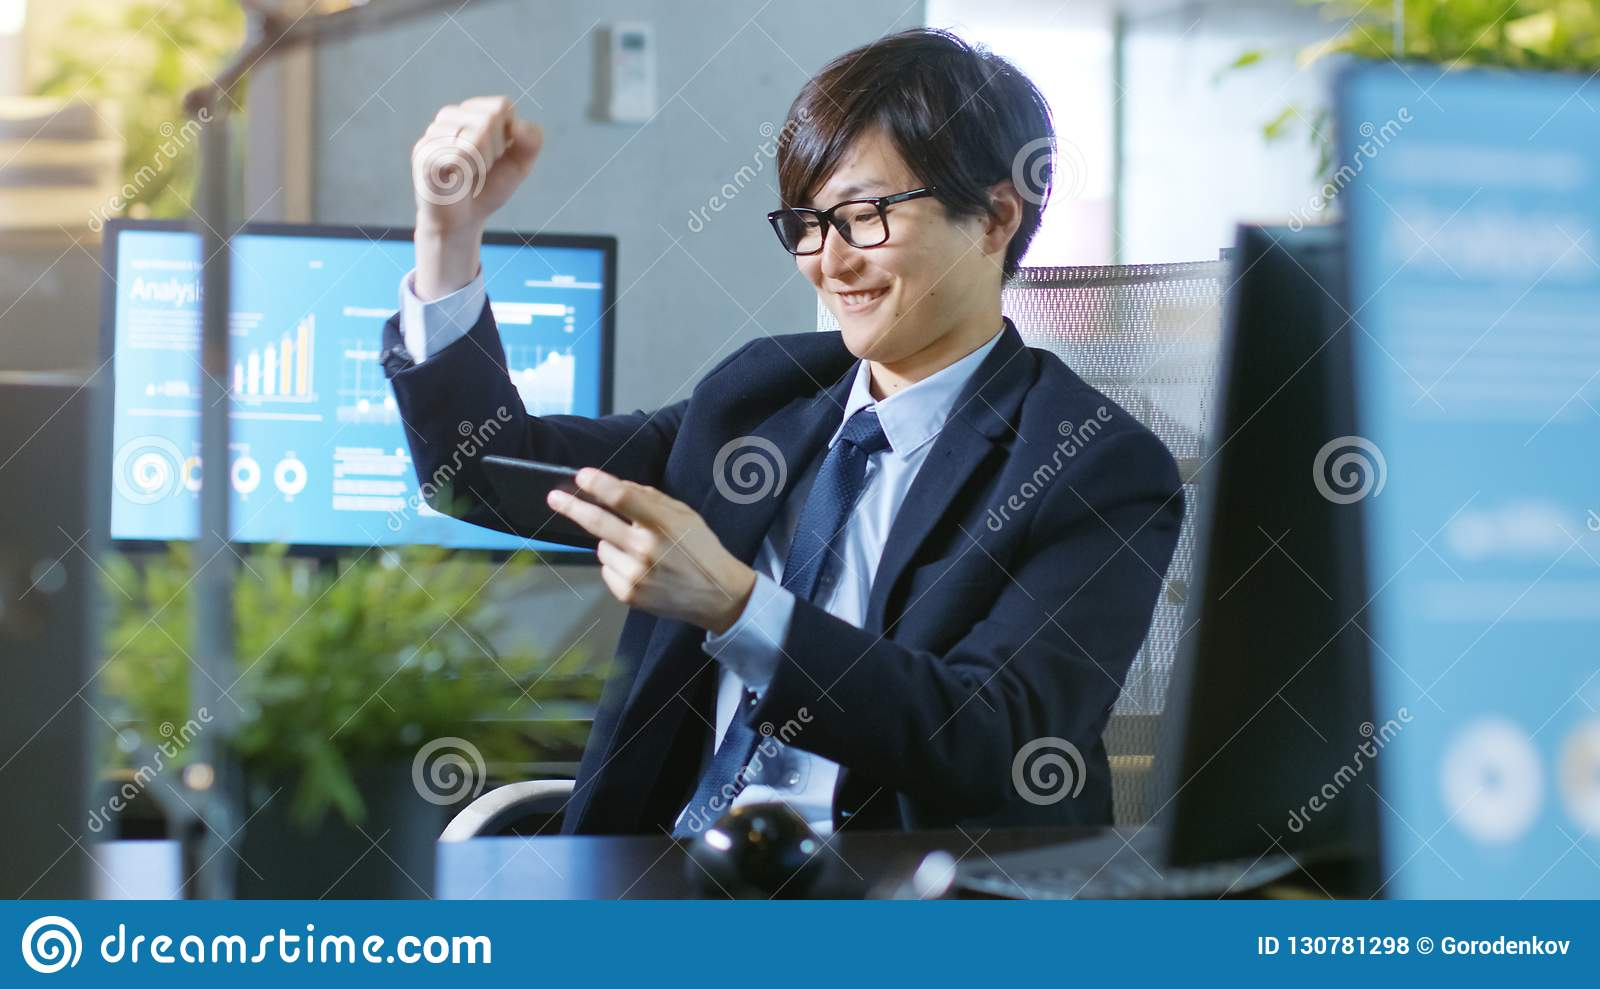 Shot of the Happy East Asian Businessman Winning in Mobile Game